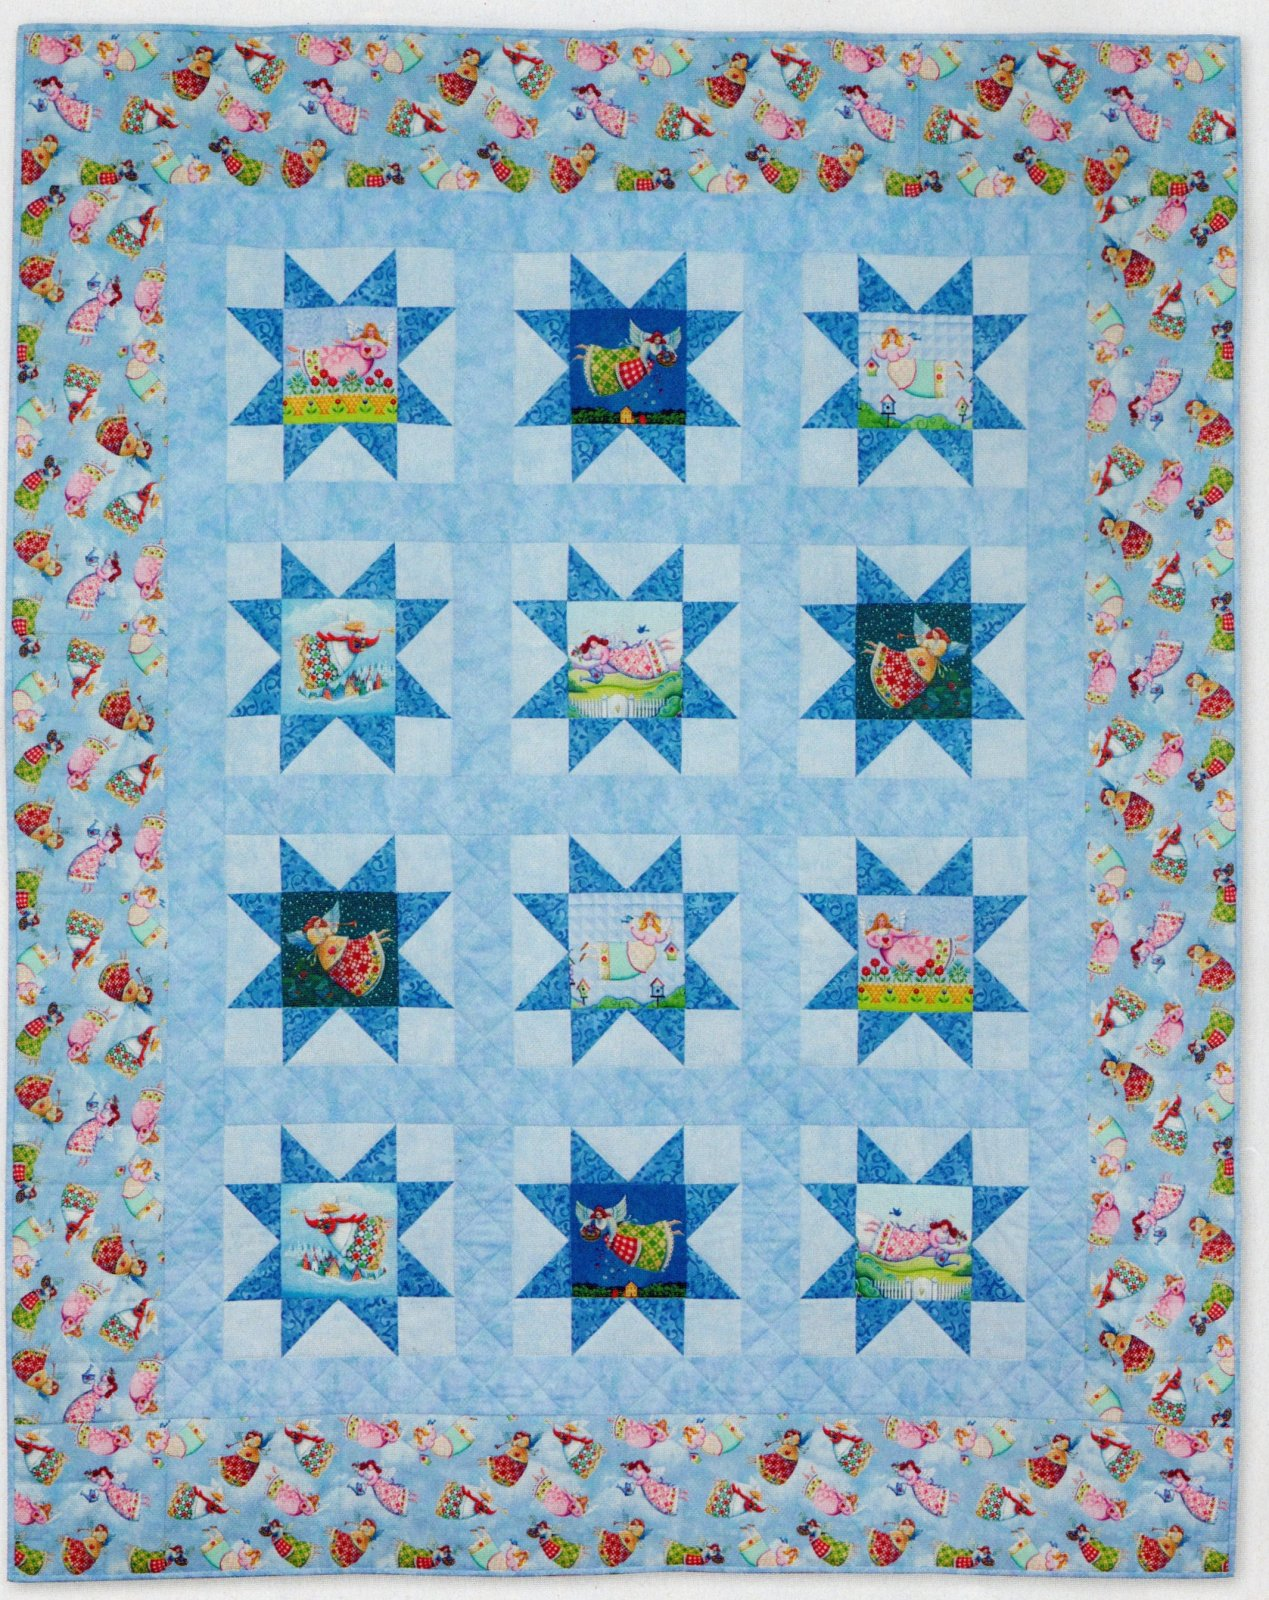 Angels in the Stars Lap quilt Kit